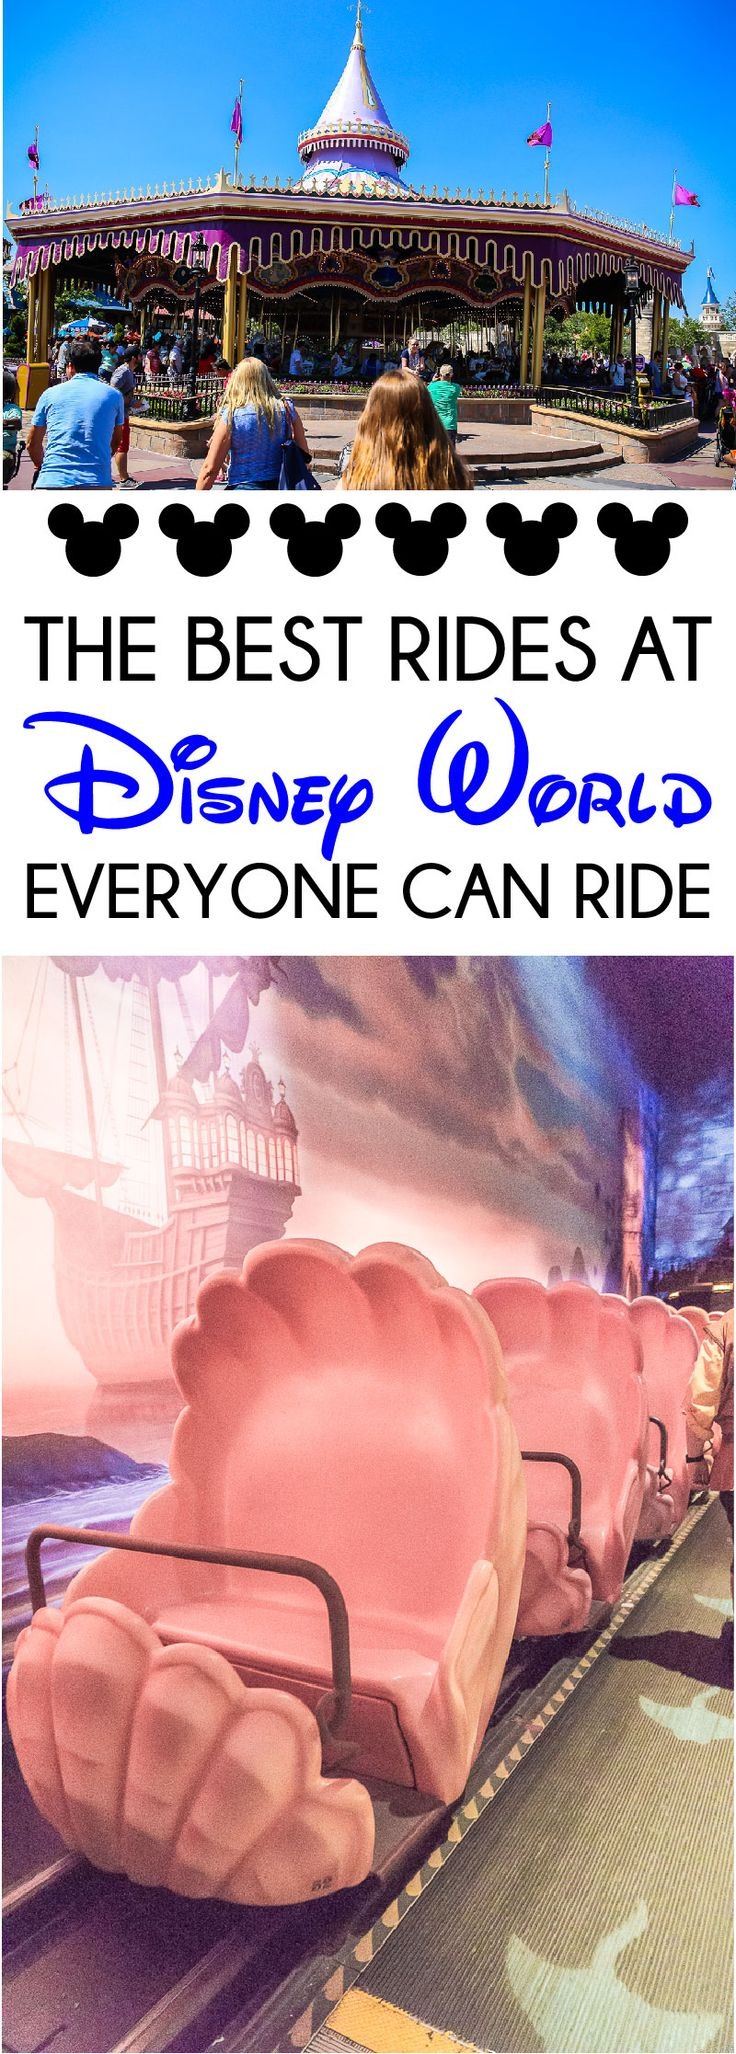 The ultimate guide to rides at Walt Disney World for all ages including kids, parents, and even grandparents!